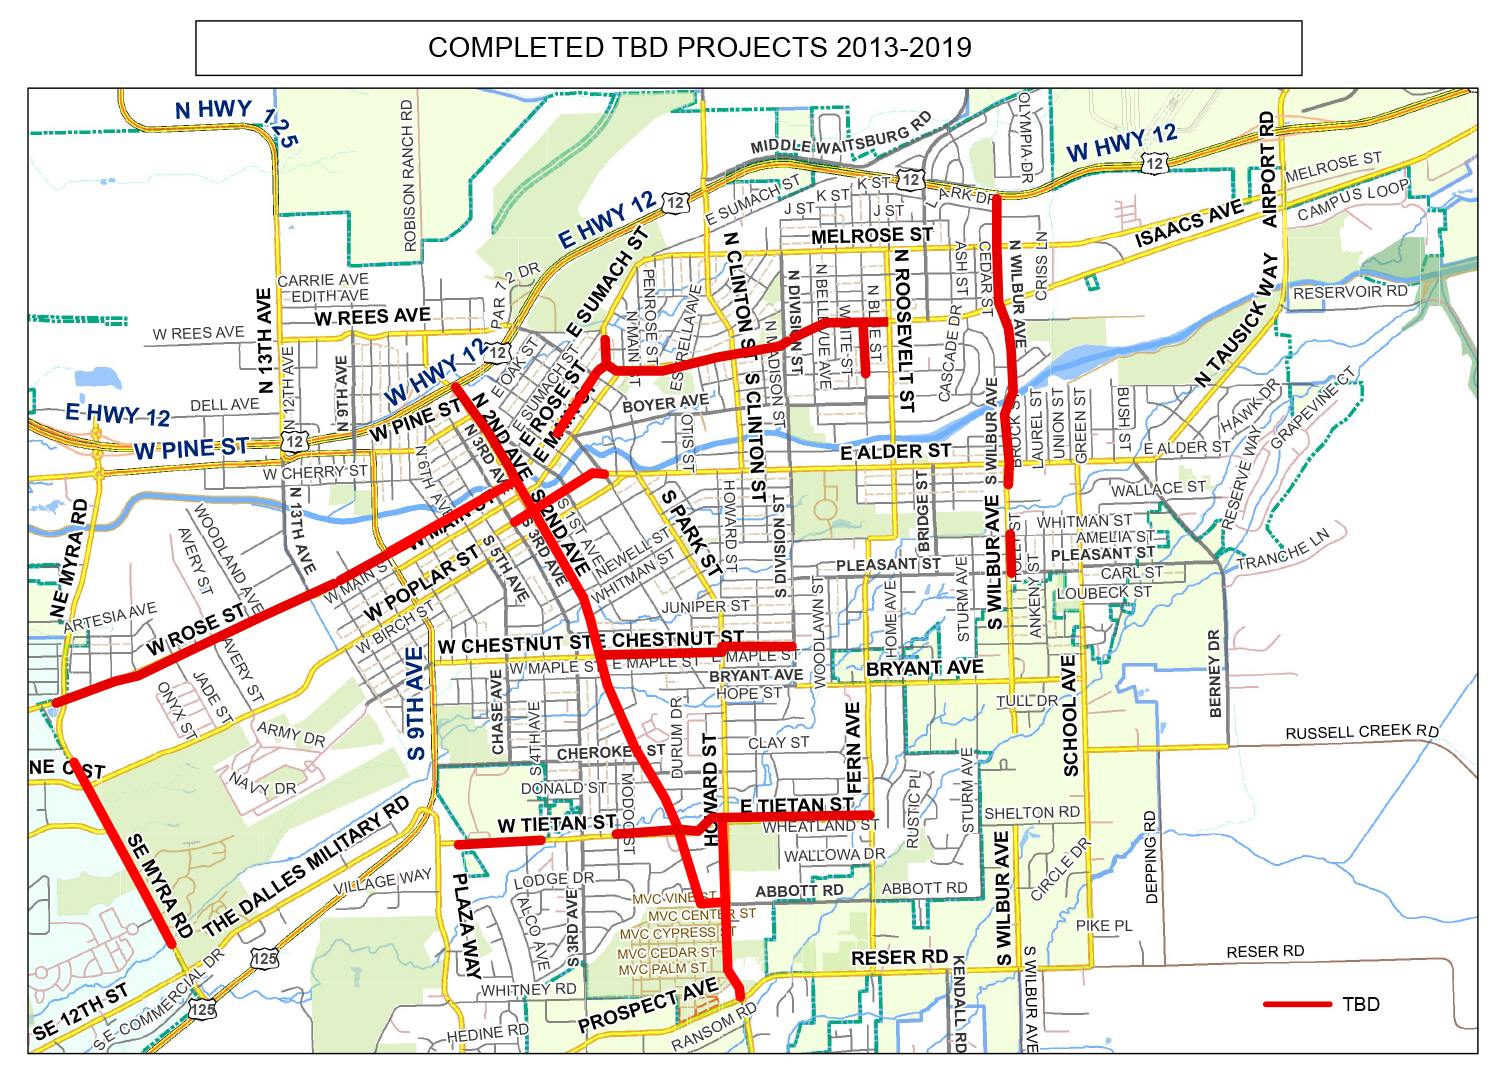 City of Walla Walla TBD projects from 2013-19